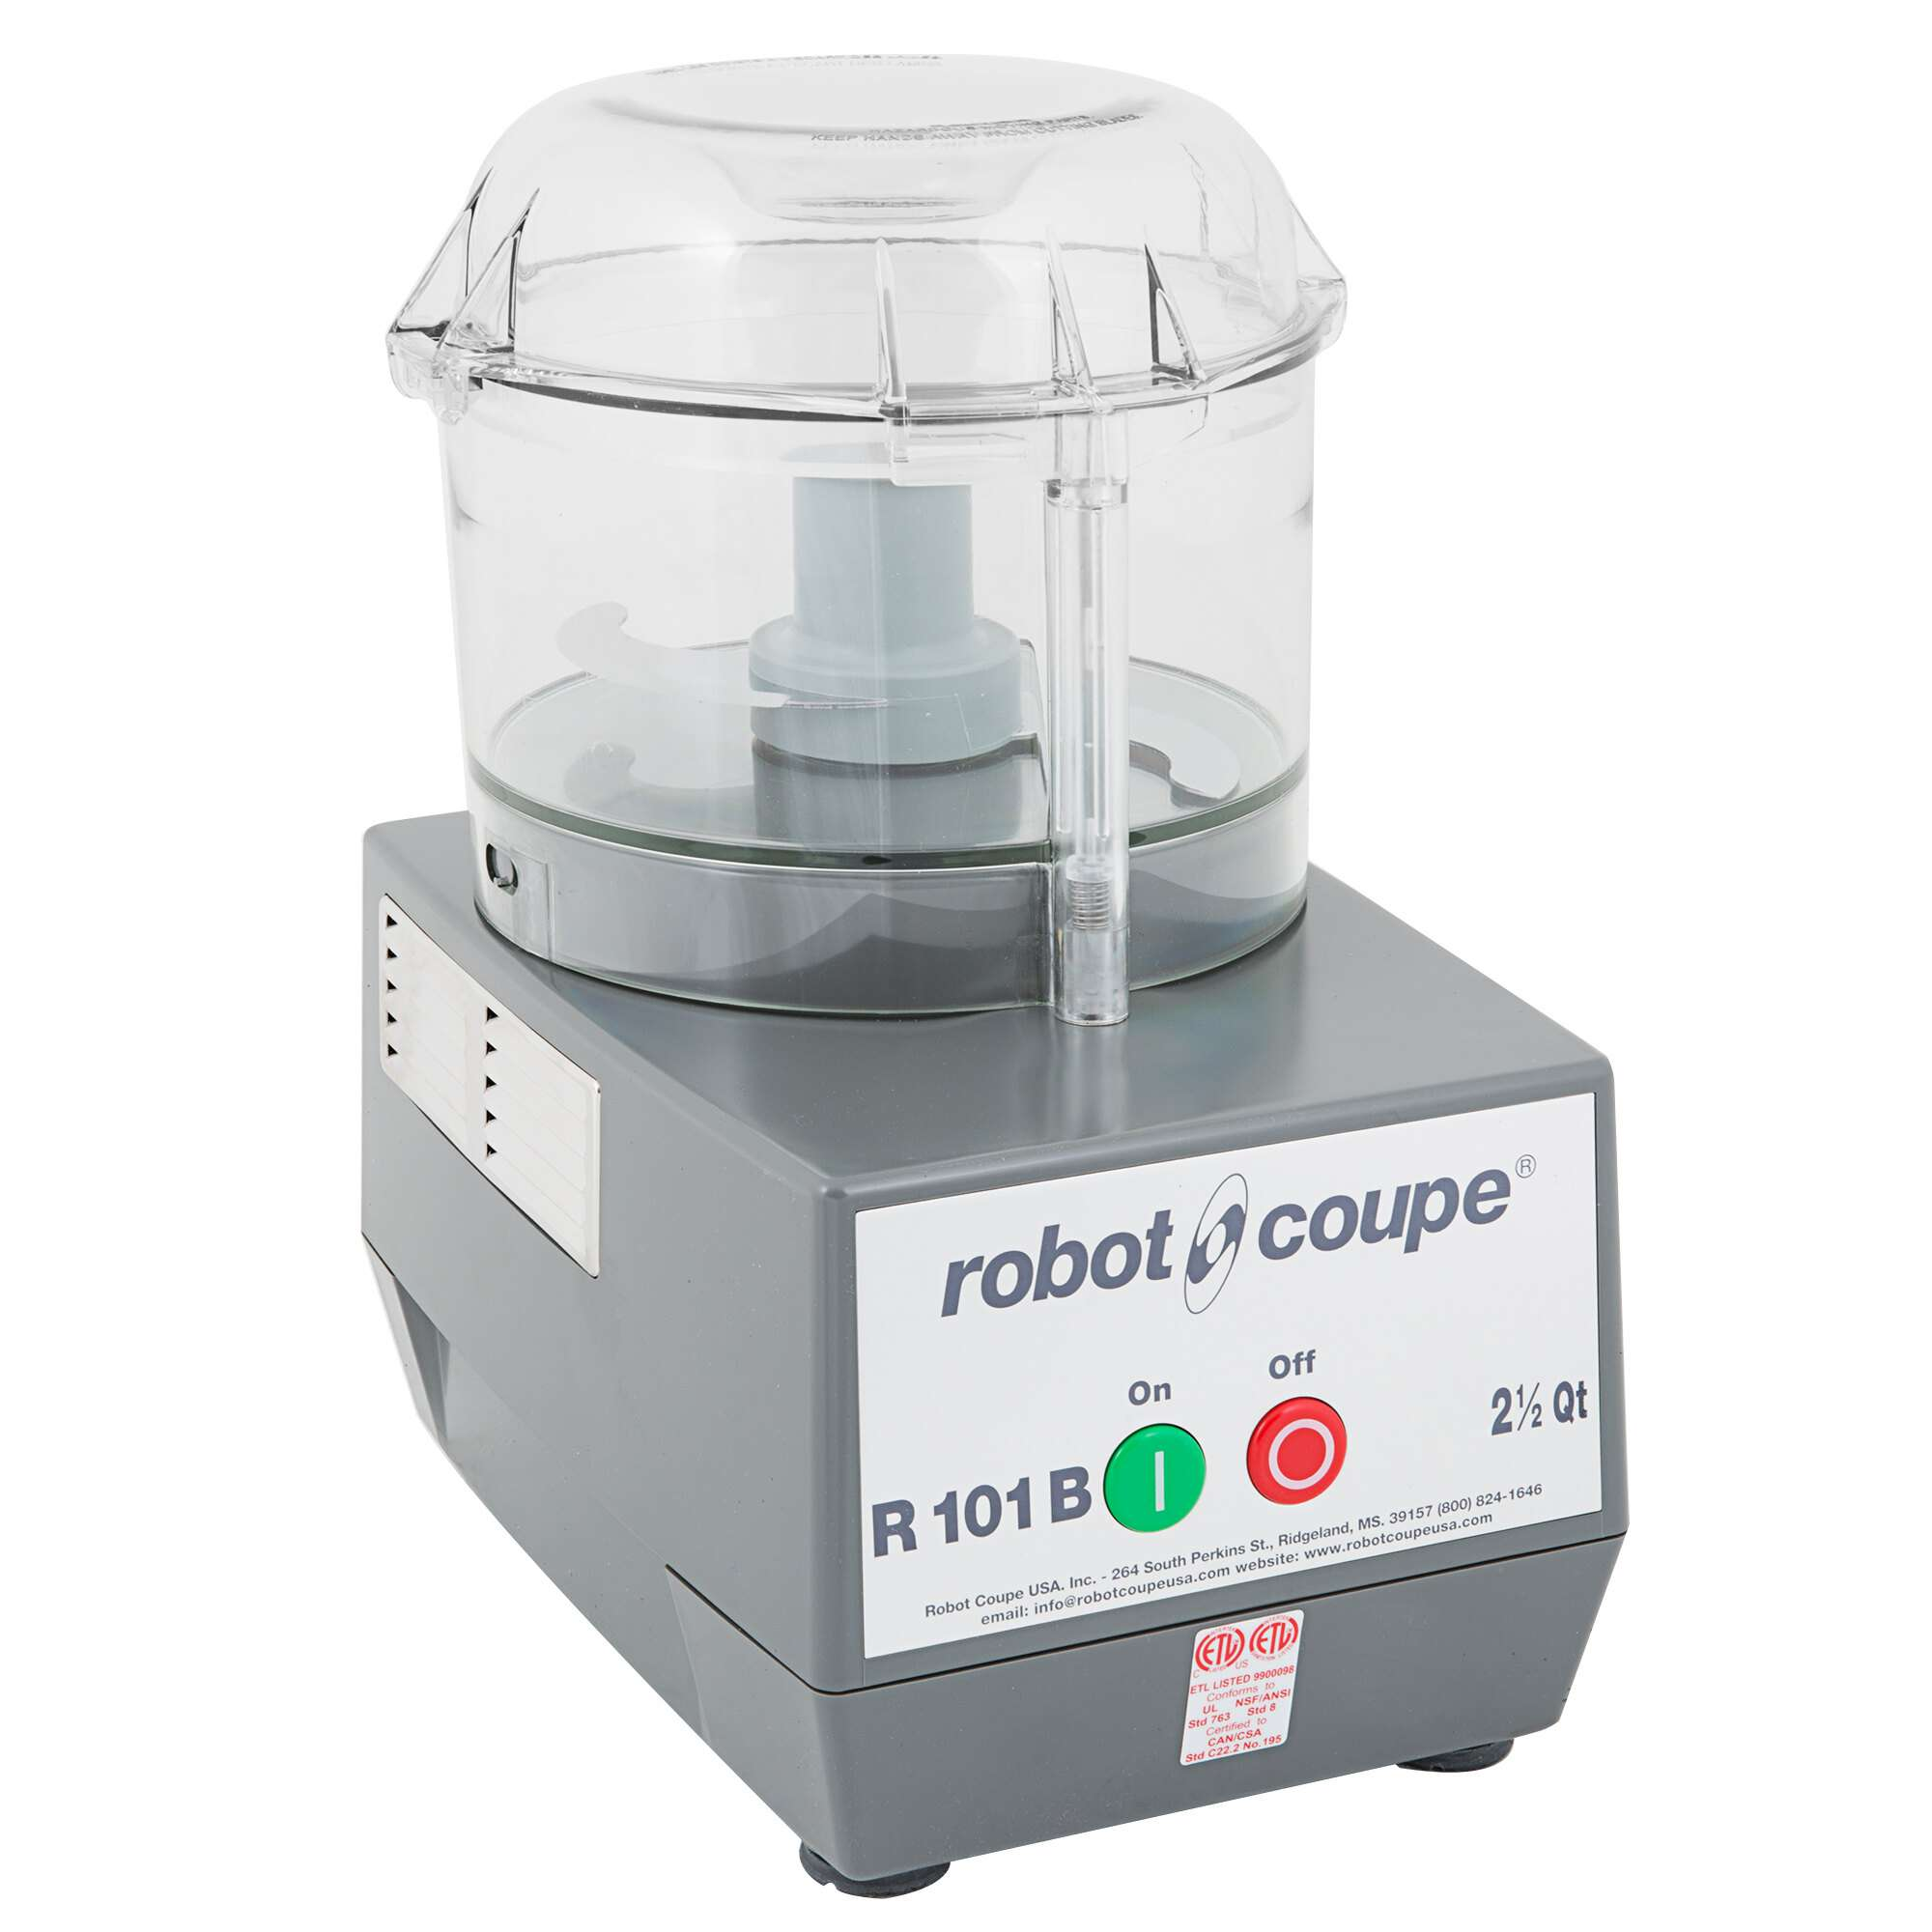 robot-coupe-combination-food-processor